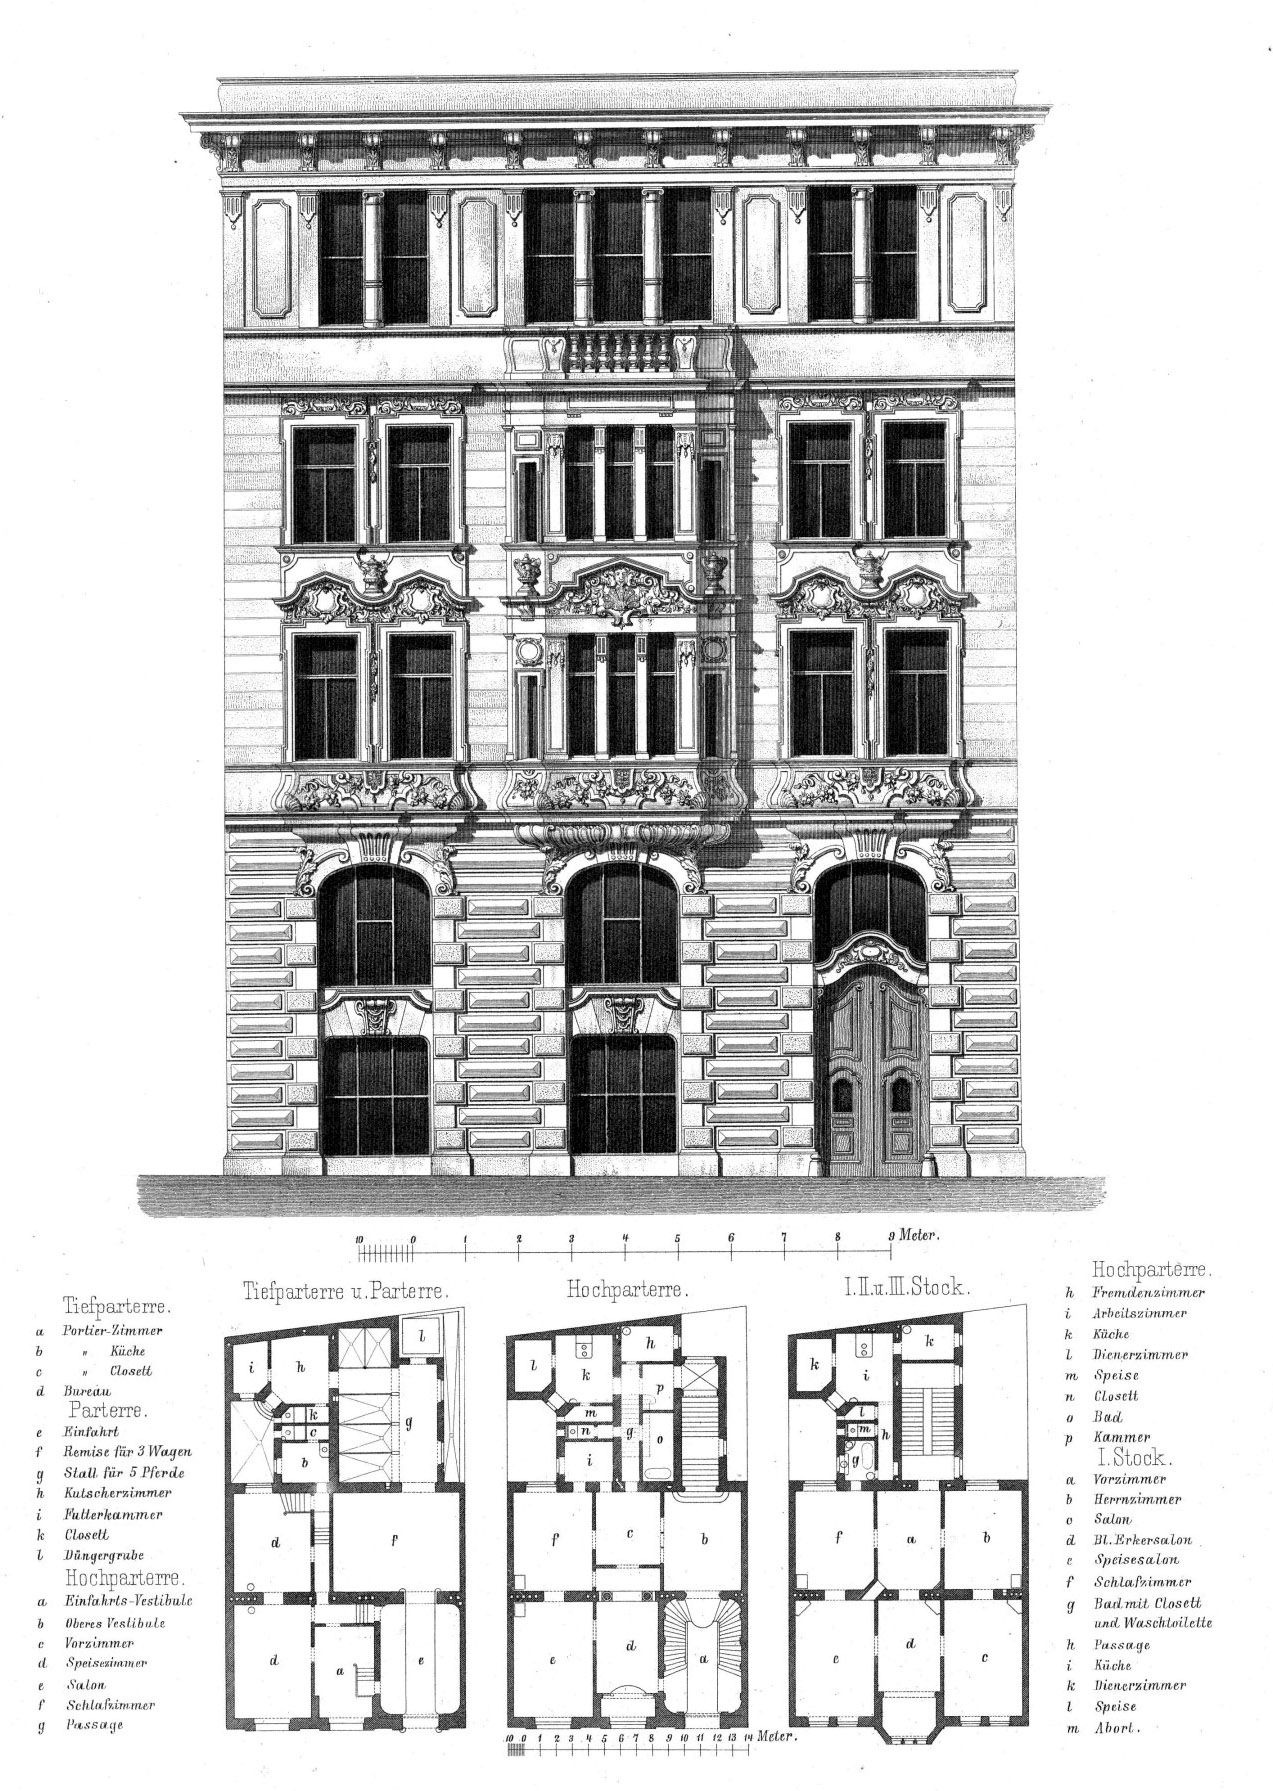 Elevation Plan For Building : Elevation and plans for a residential building vienna